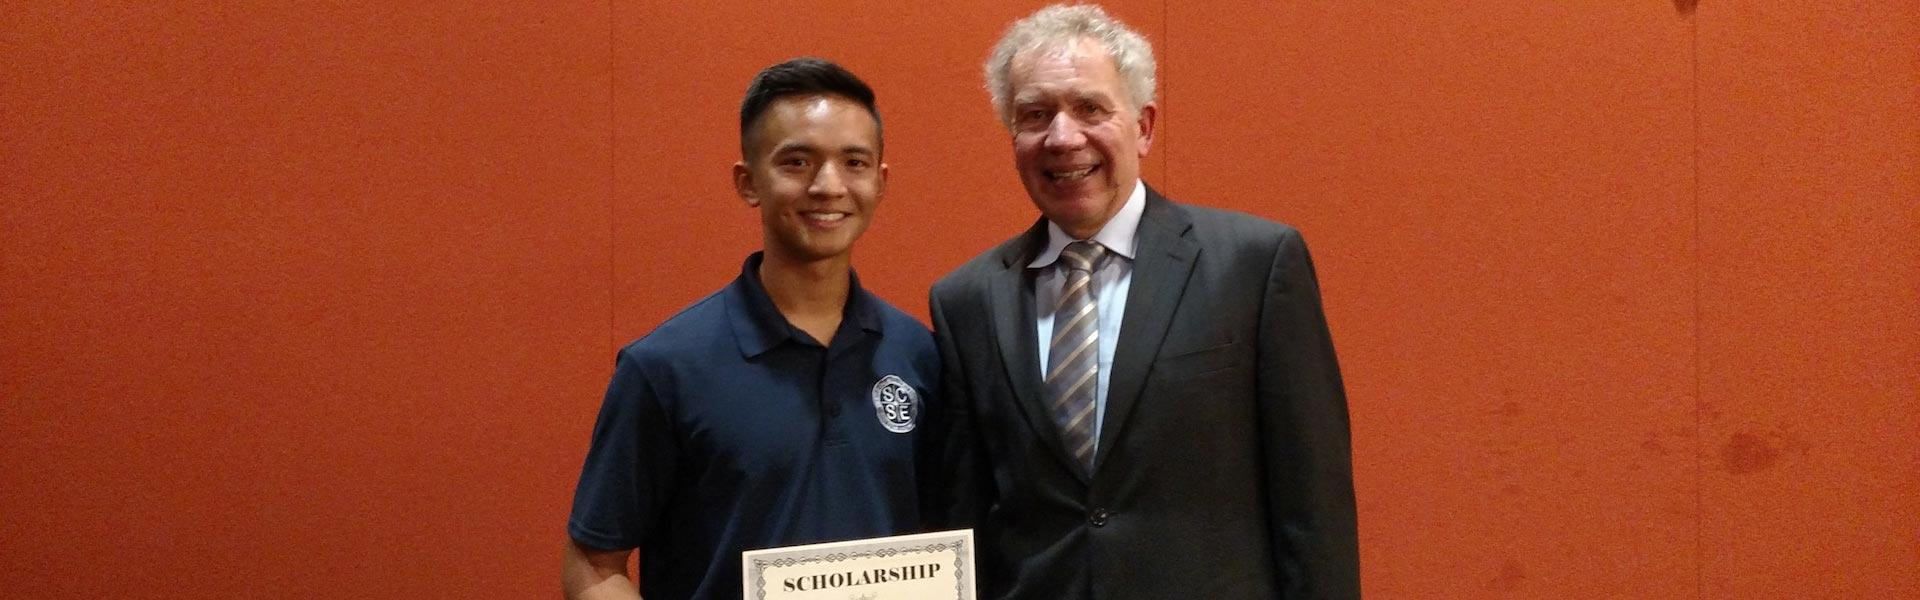 Alan Puah (left in photo), an SE senior, recently received a scholarship awarded by Simpson Gumpertz & Heger (SGH)